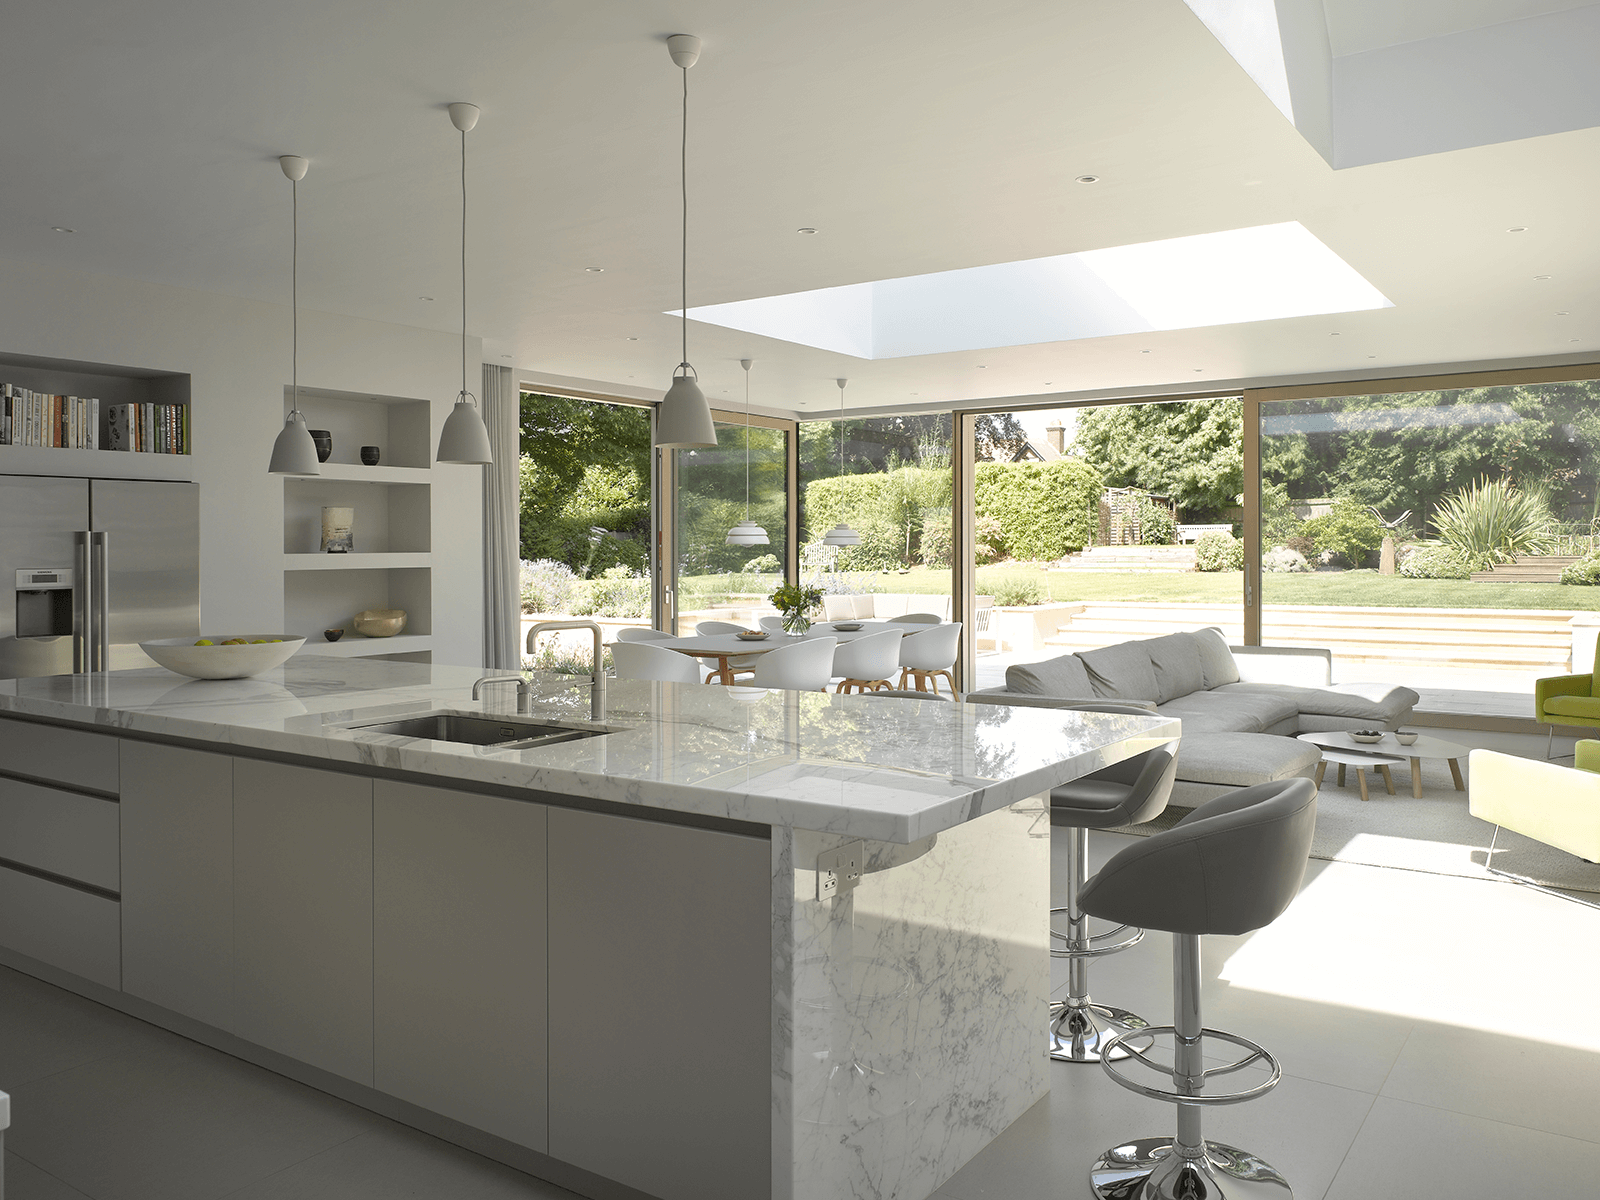 Best Crook A Minimal White Marble Kitchen From Roundhouse 400 x 300